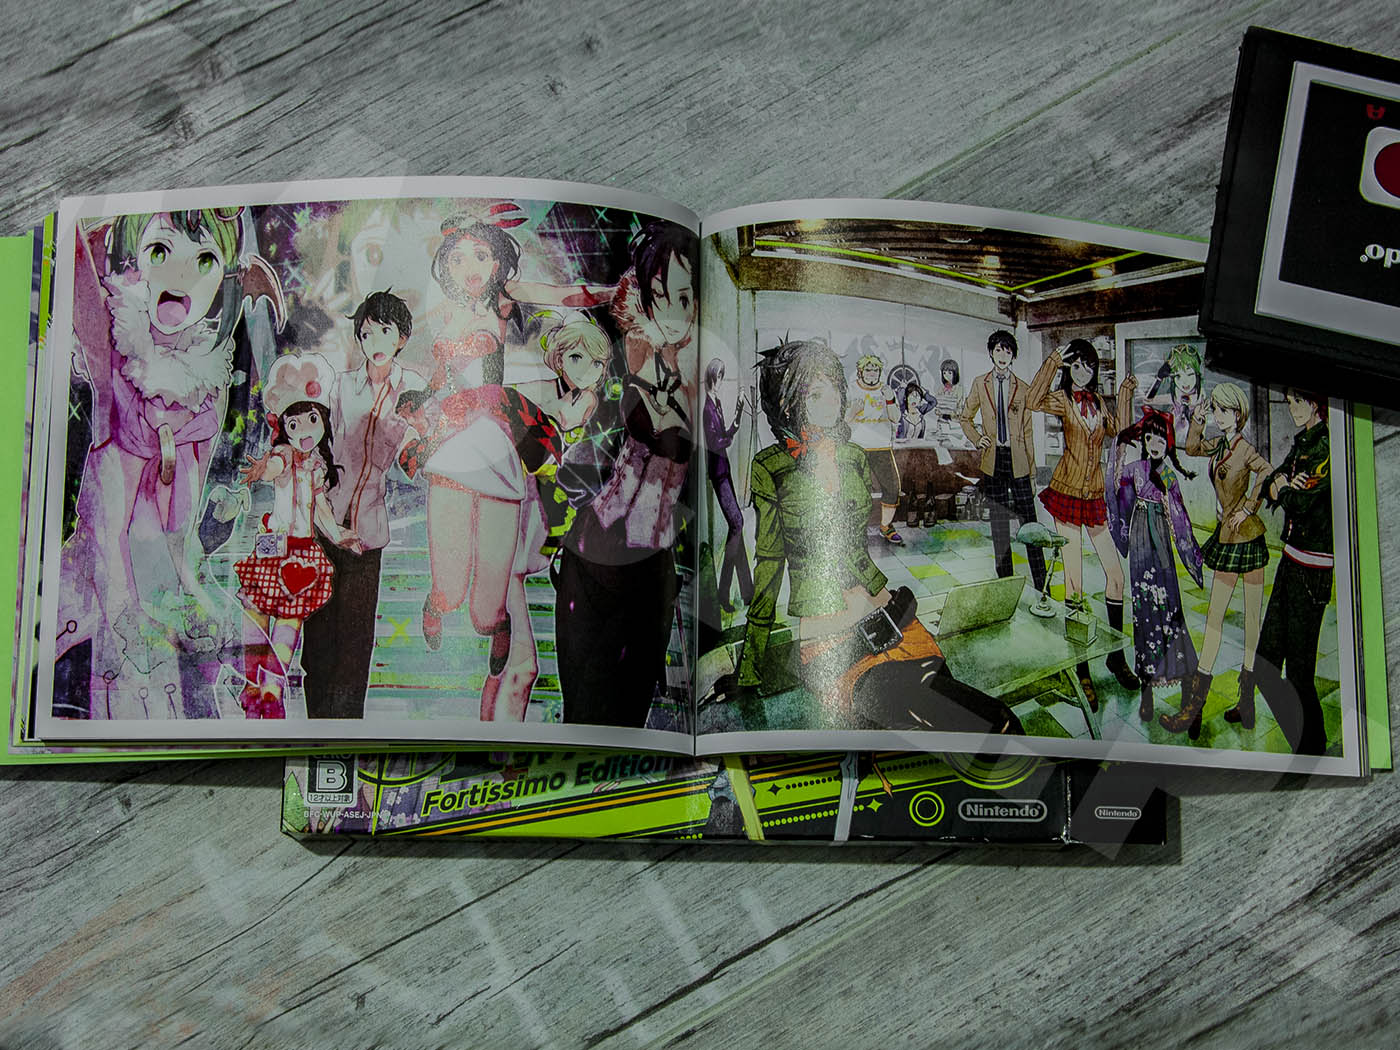 Tokyo Mirage Sessions #FE Fortissimo Edition 2015 - Artbook